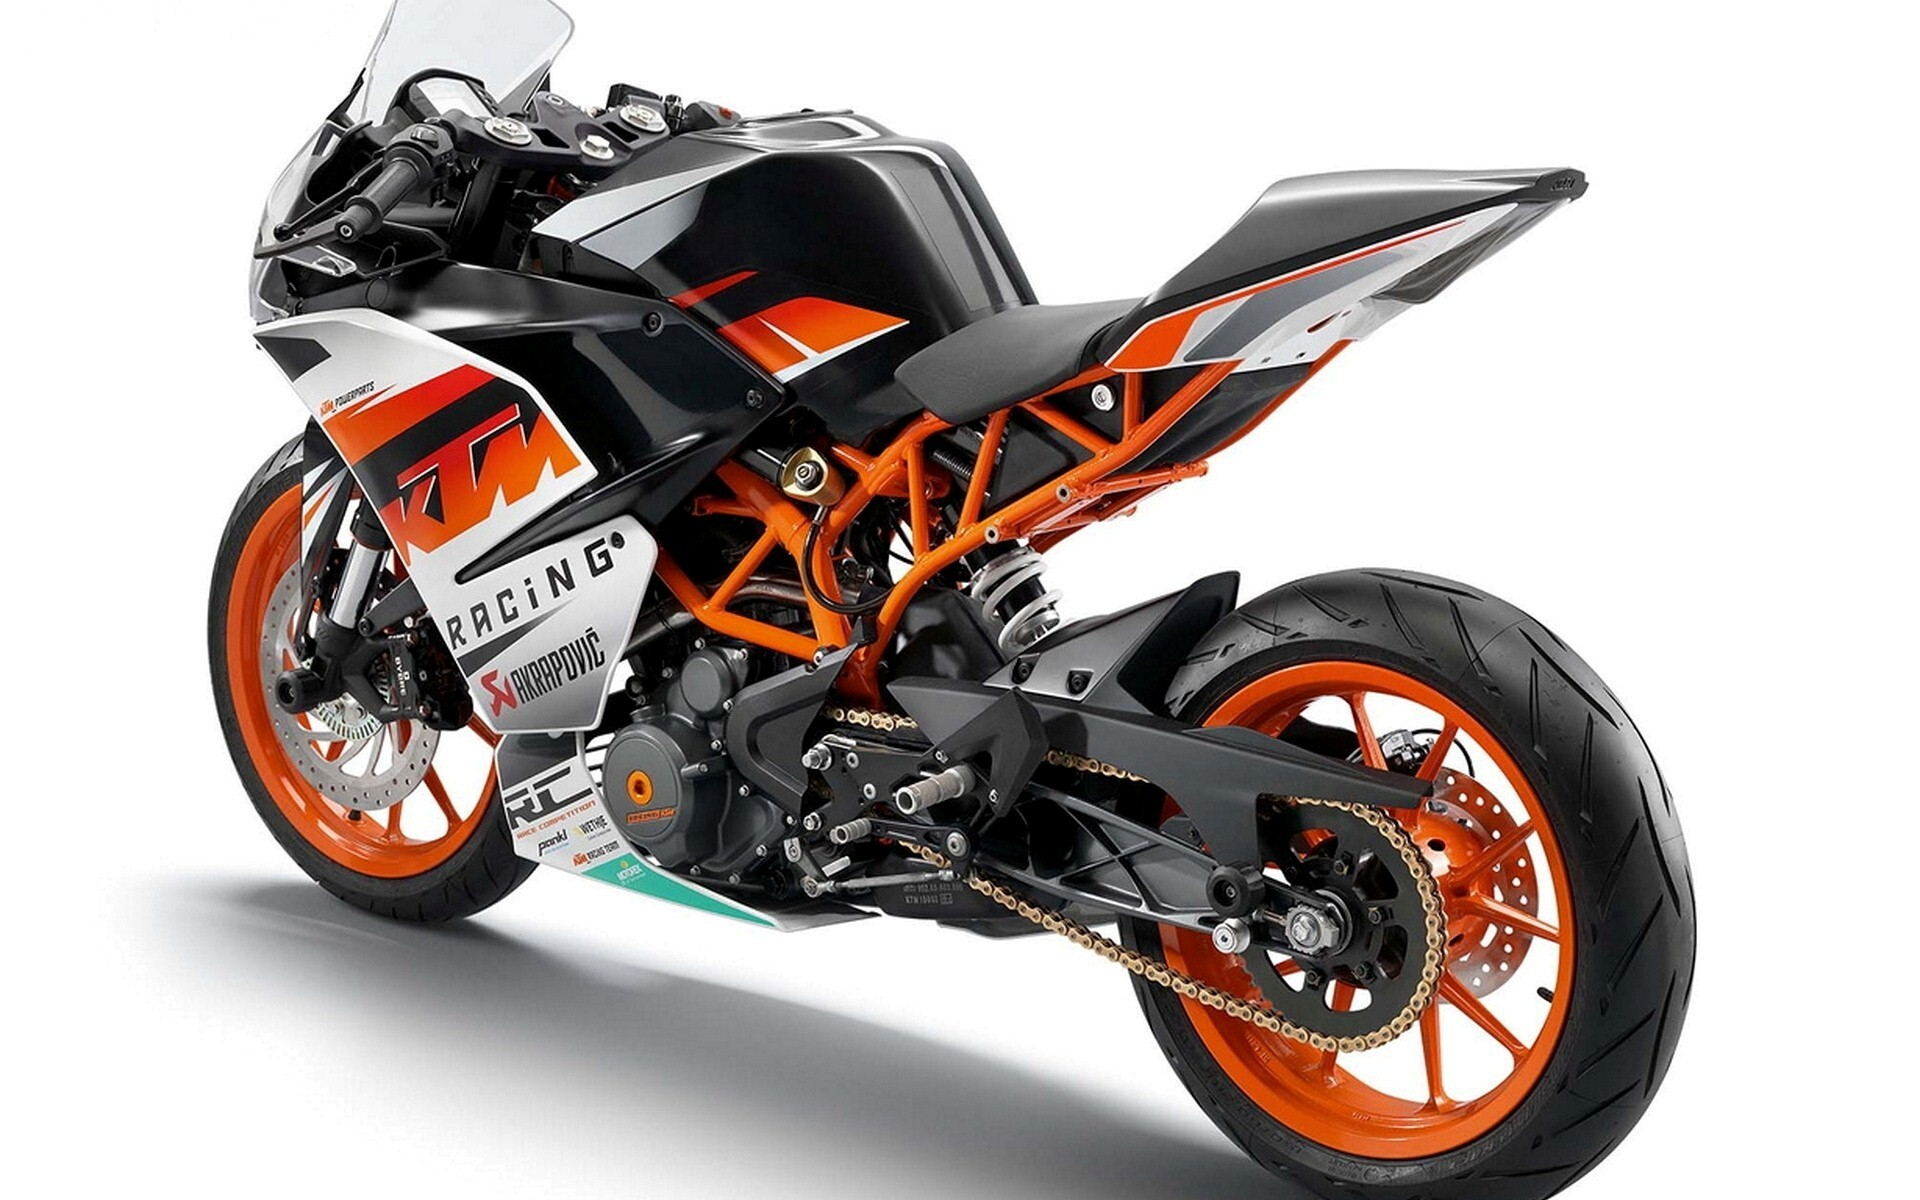 Ktm Rc 200 Sport Bike Hd Wallpaper Hd Wallpapers